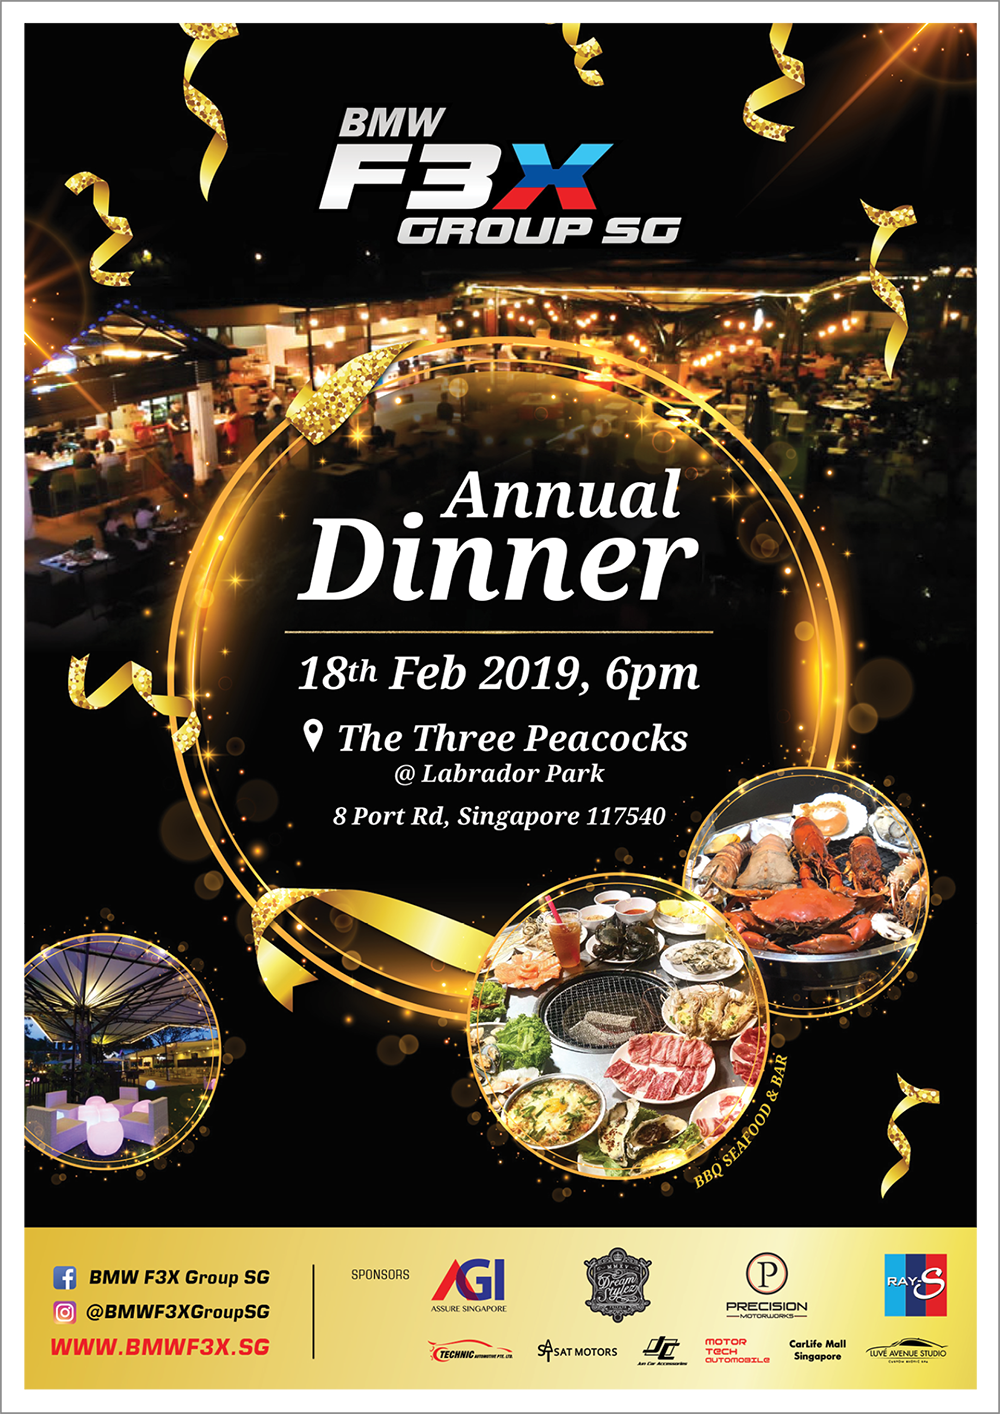 //bmwcarclub.sg/wp-content/uploads/2019/10/BMW-F3X-Annual-Dinner-2019-Poster.png